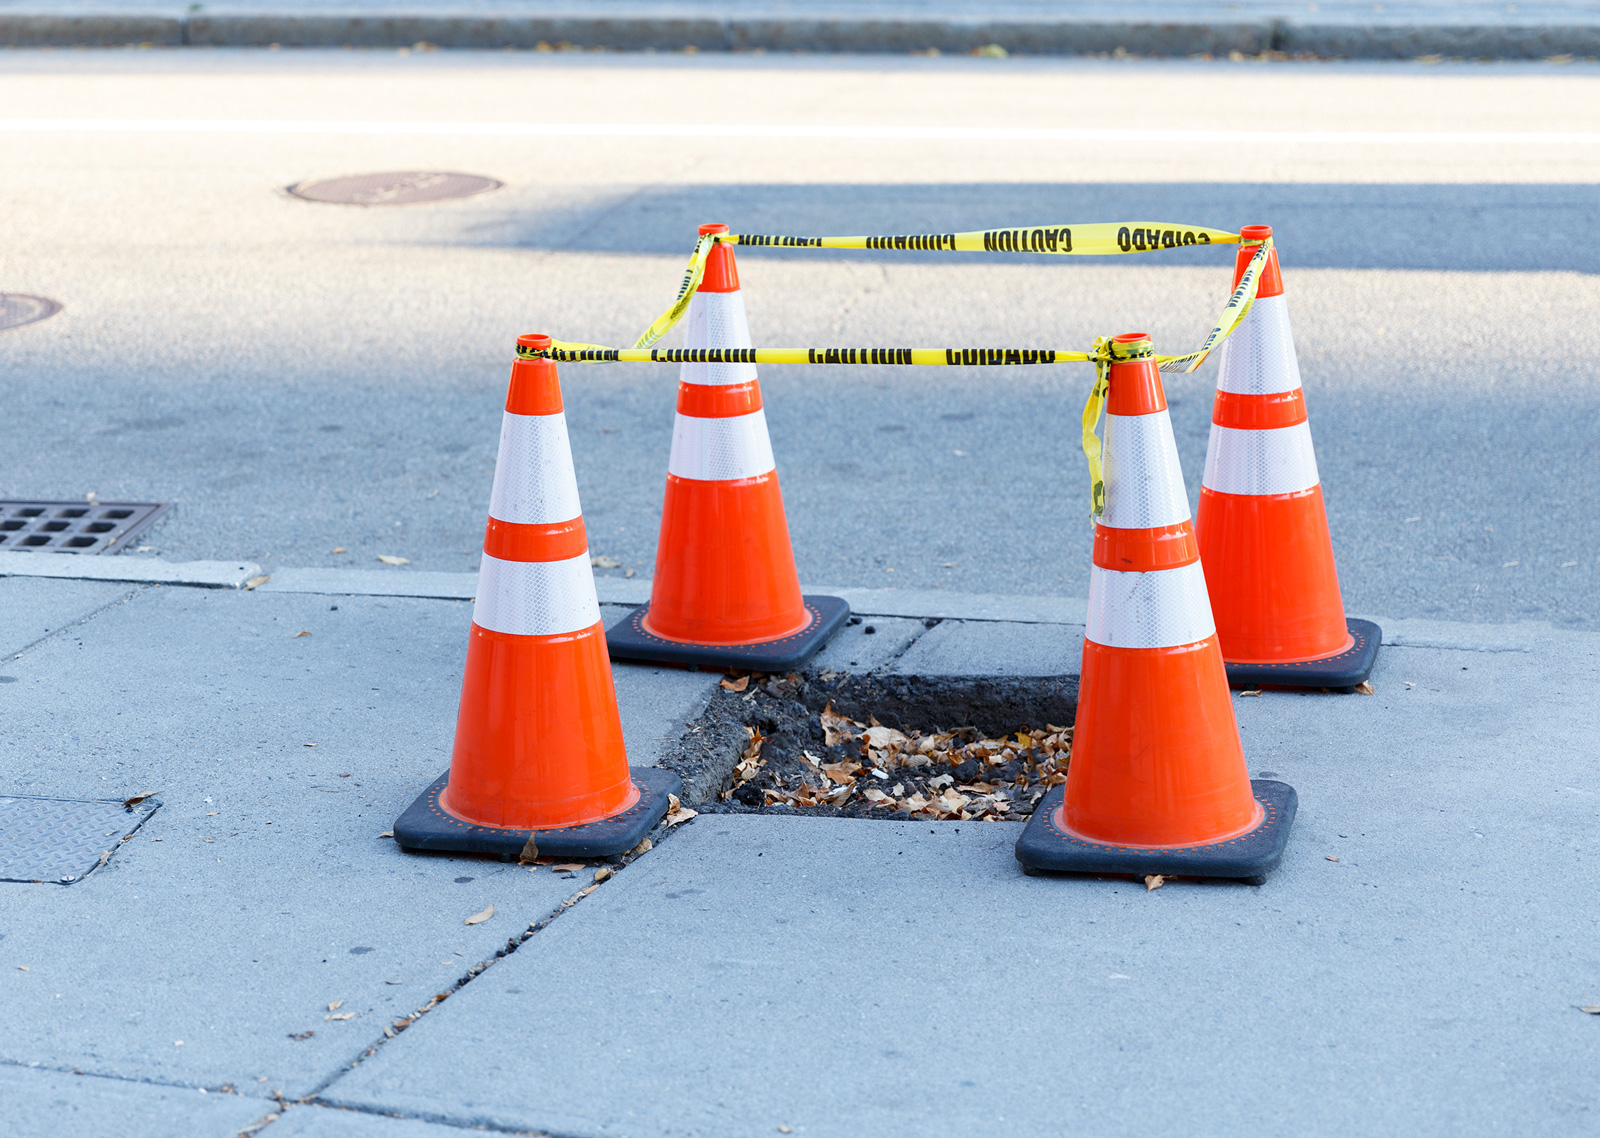 pothole surrounded by cones